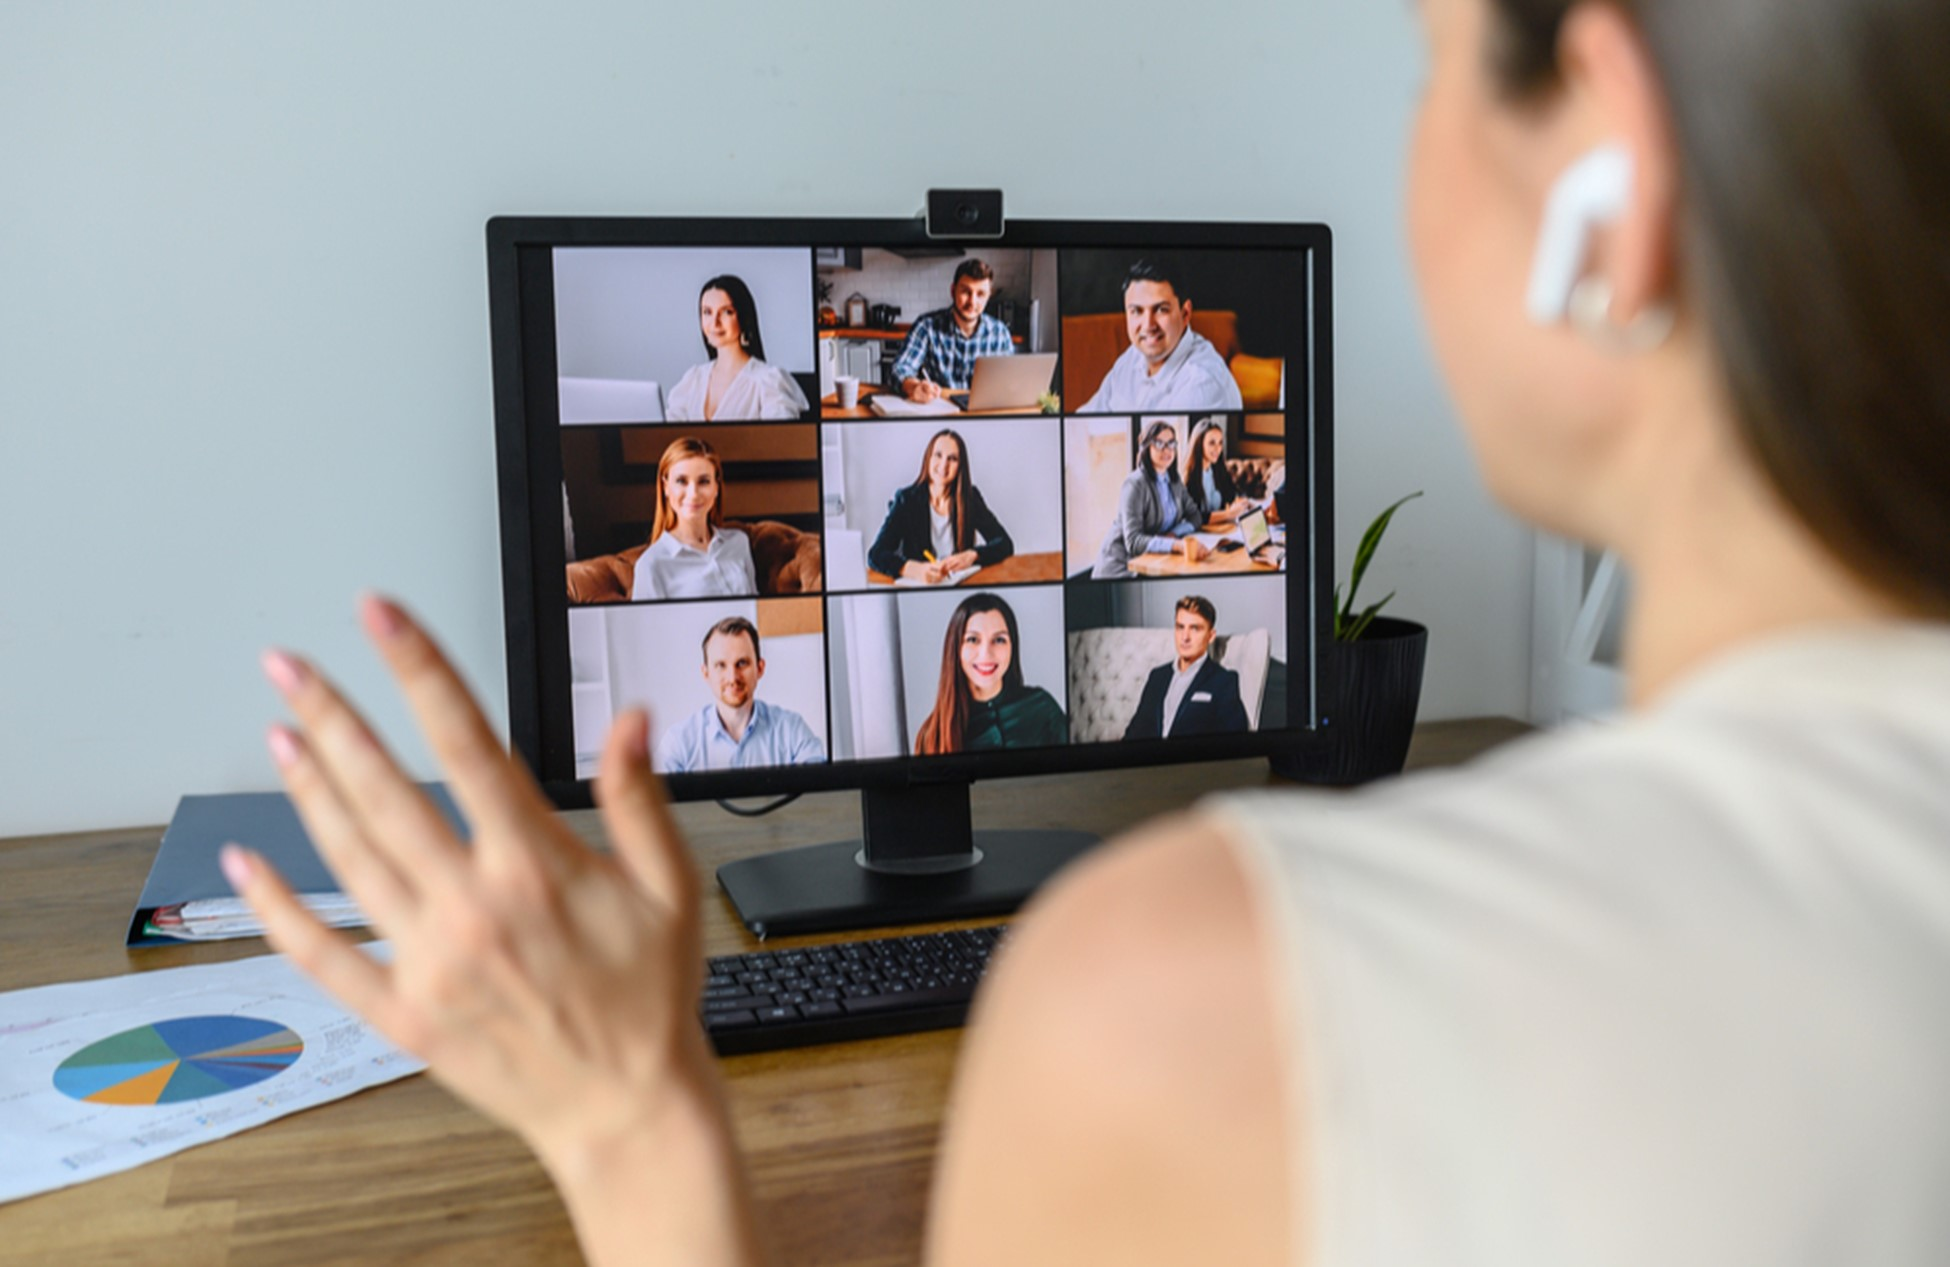 A woman communicating with coworkers in a virtual meeting